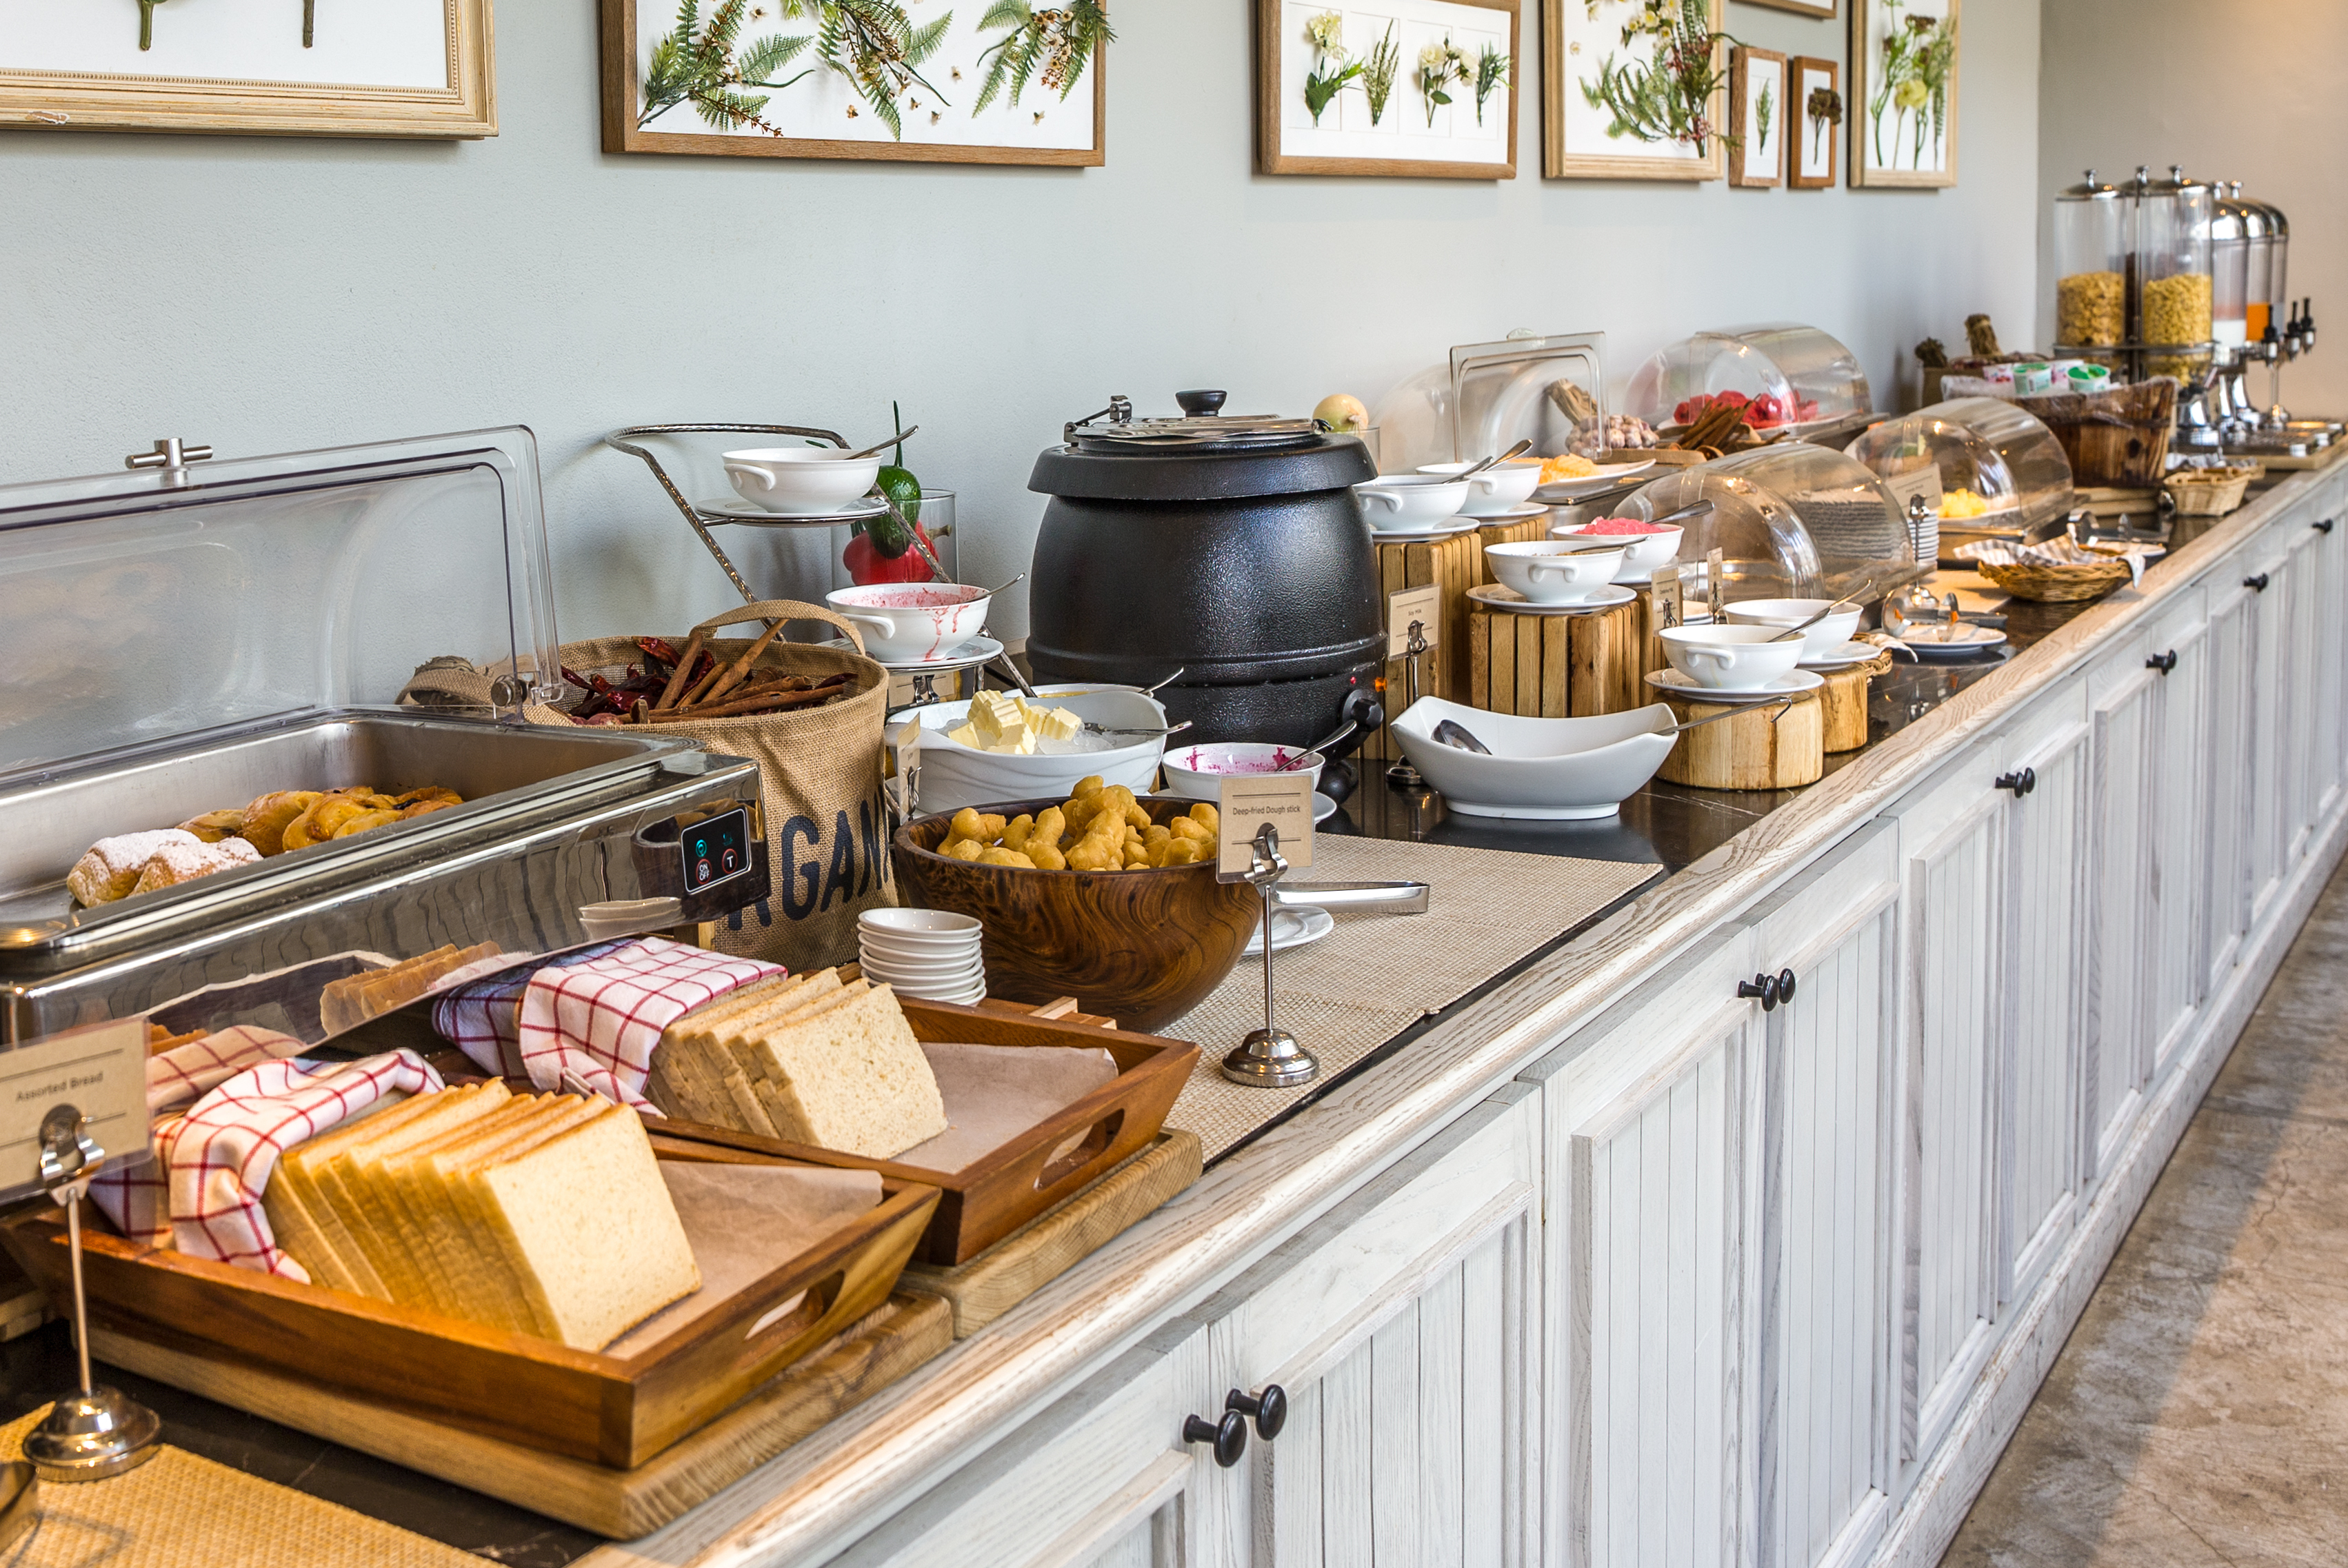 Terrific 7 Ways To Eat Better At A Hotel Breakfast Buffet Kitchn Home Interior And Landscaping Eliaenasavecom